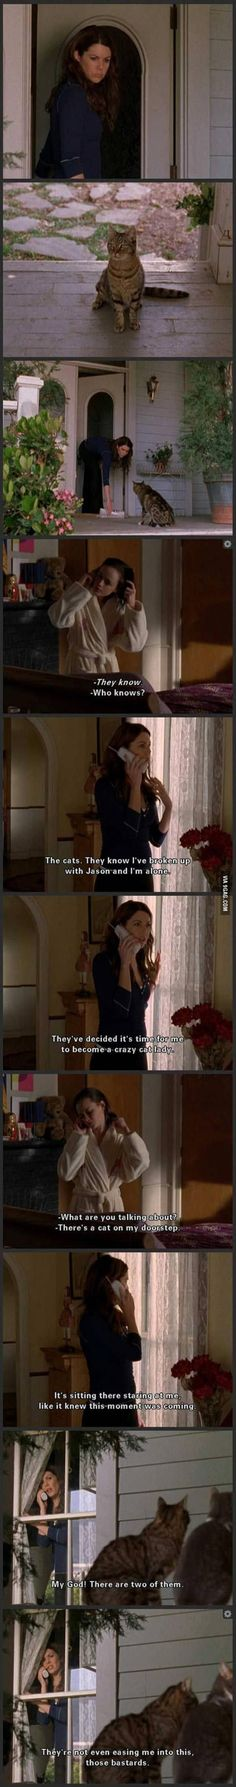 I miss Gilmore Girls                                                                                                                                                     More